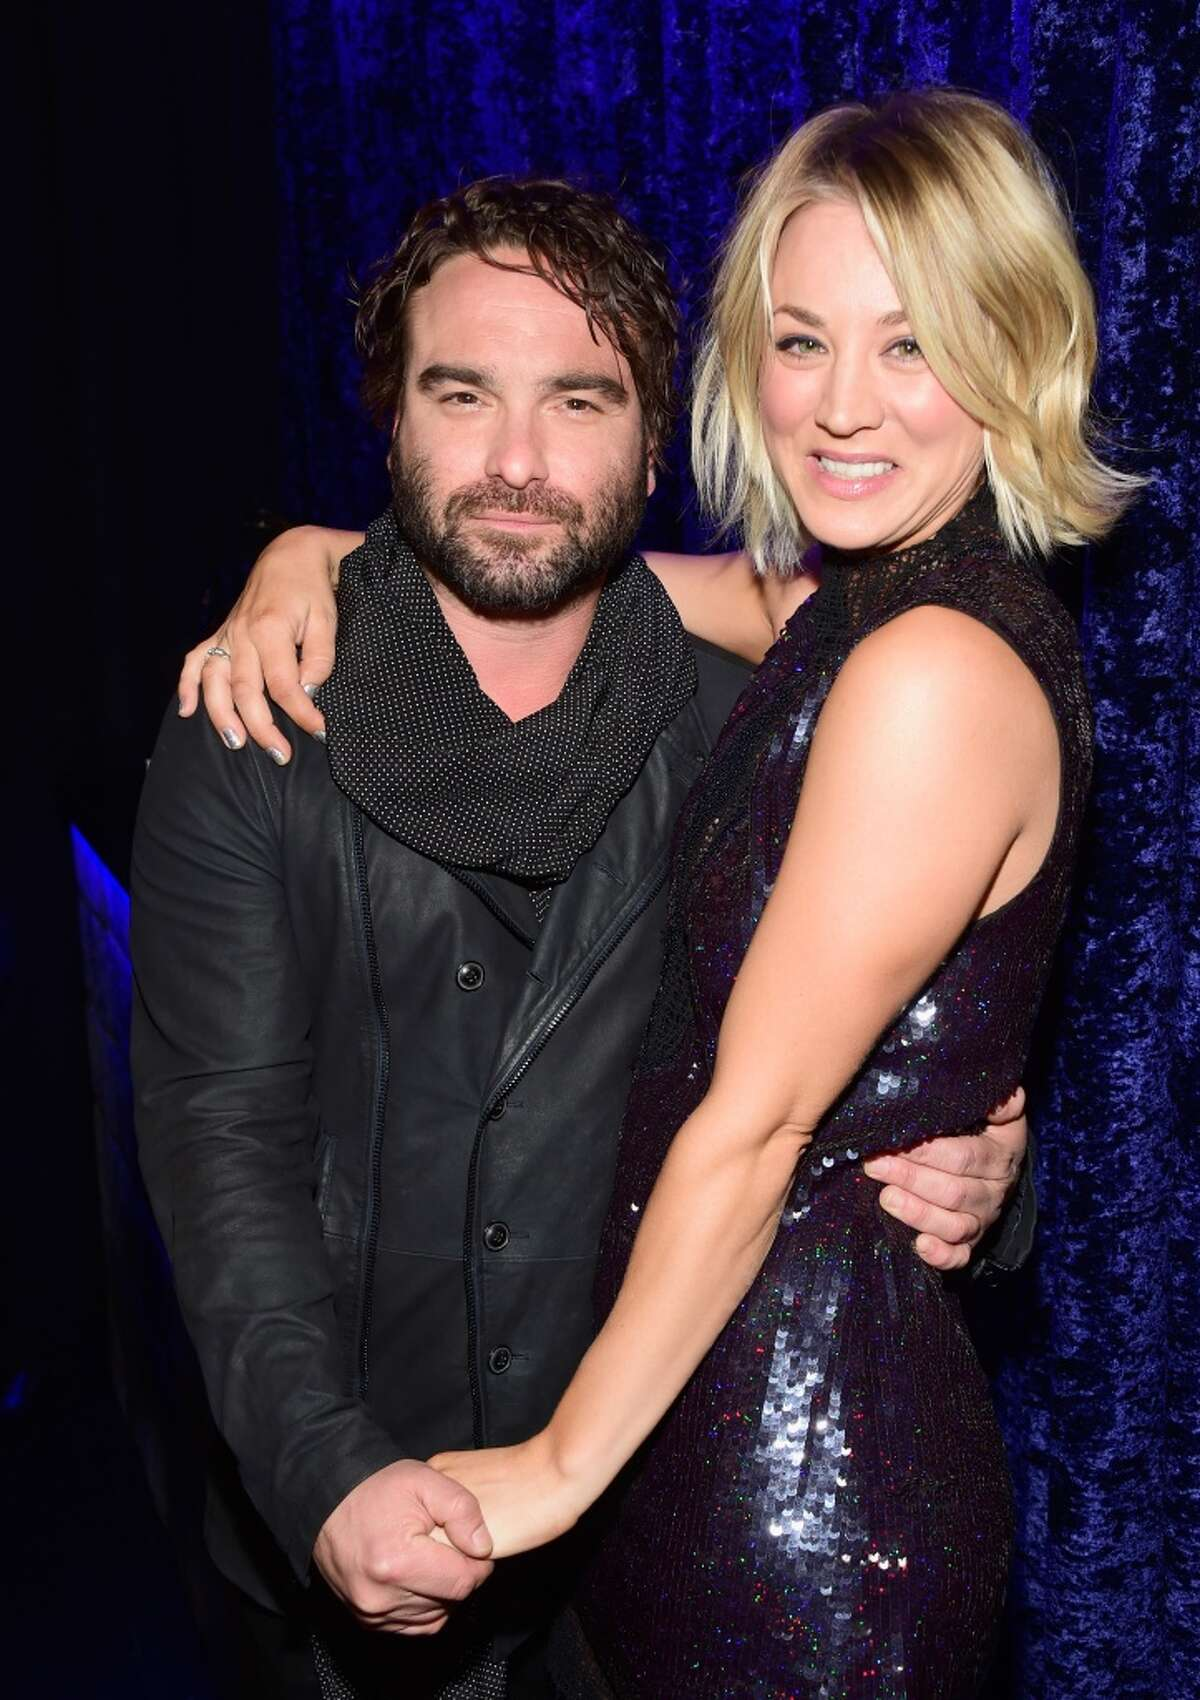 Actor Johnny Galecki (L) and actress Kaley Cuoco attend the People's Choice Awards 2016 at Microsoft Theater on Jan. 6, 2016 in Los Angeles, Calif.